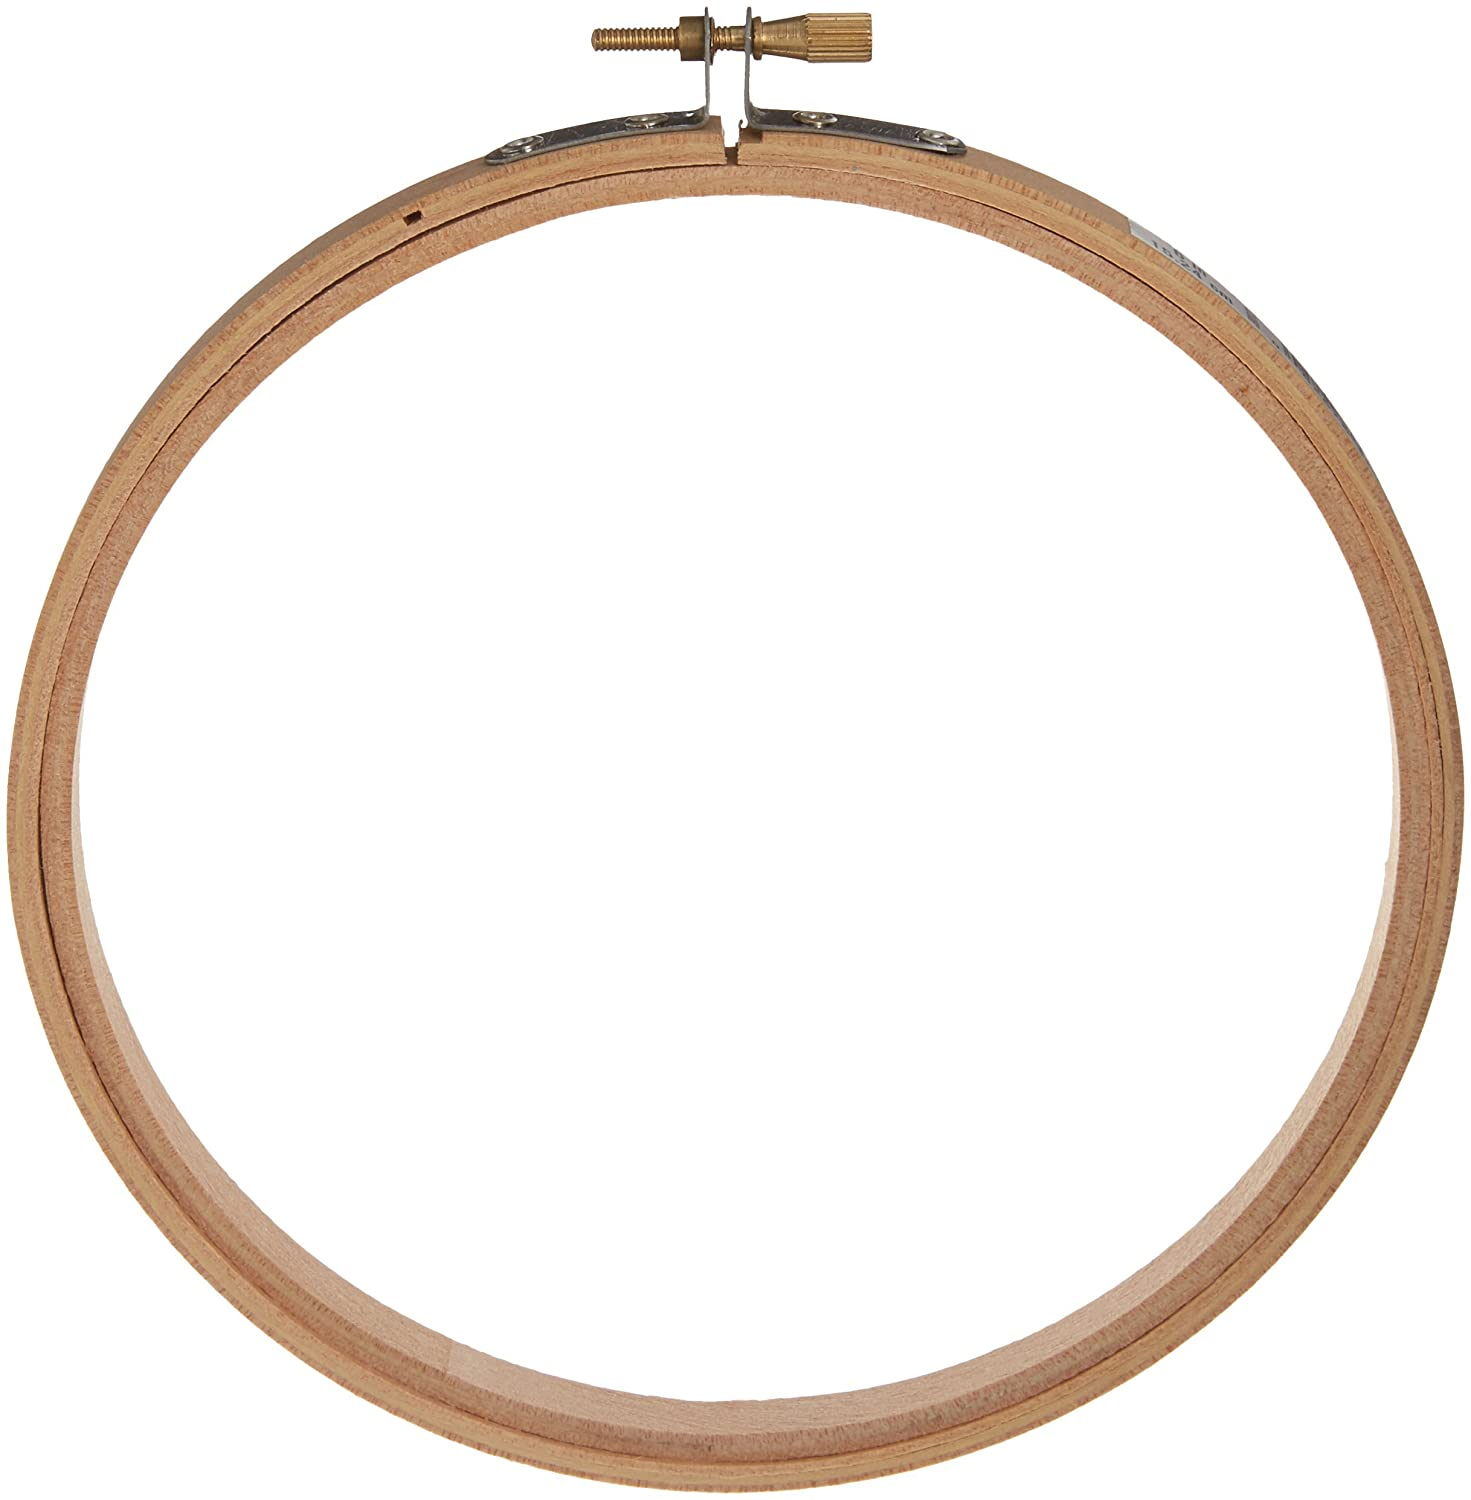 Darice Wood Embroidery Hoops, 6-Inch 39013